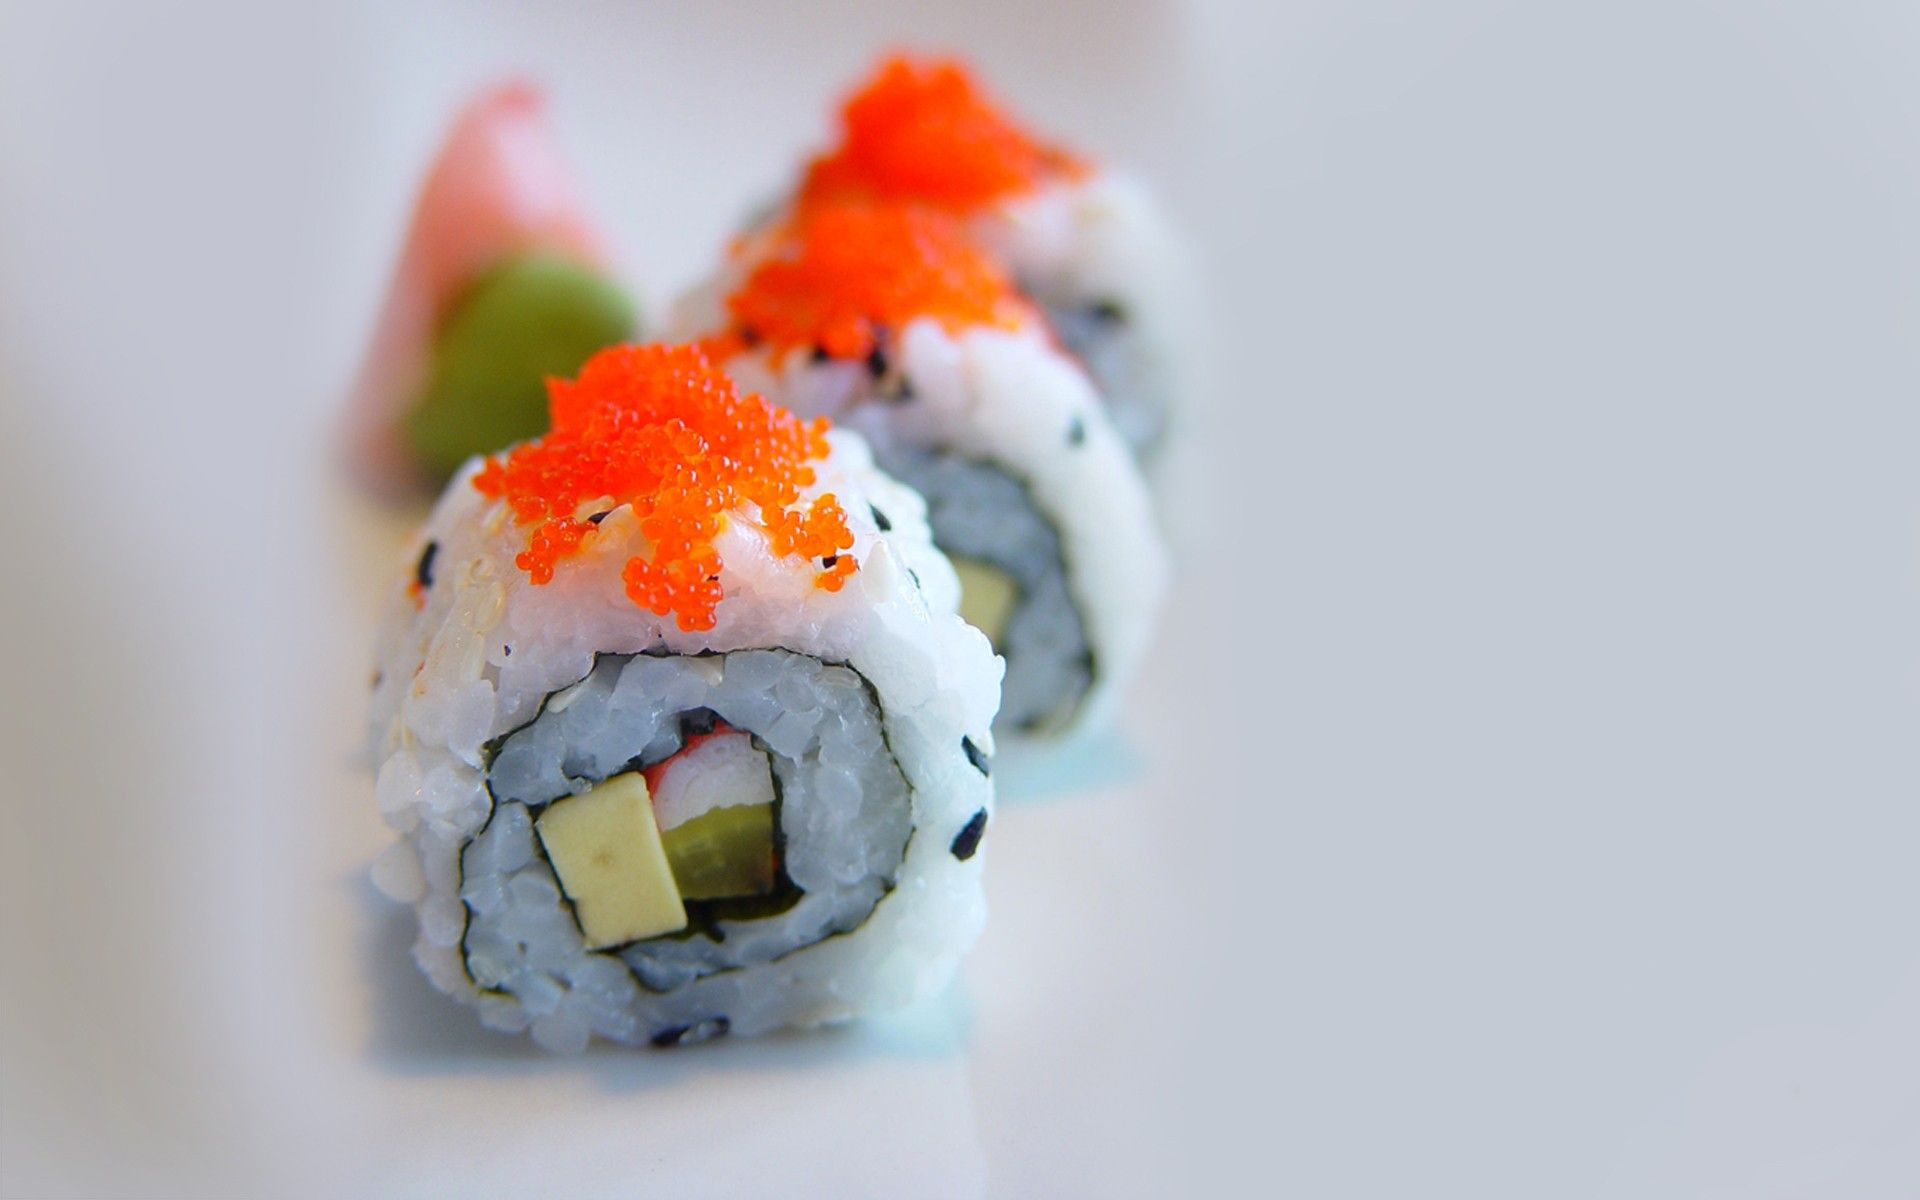 sushi images hd